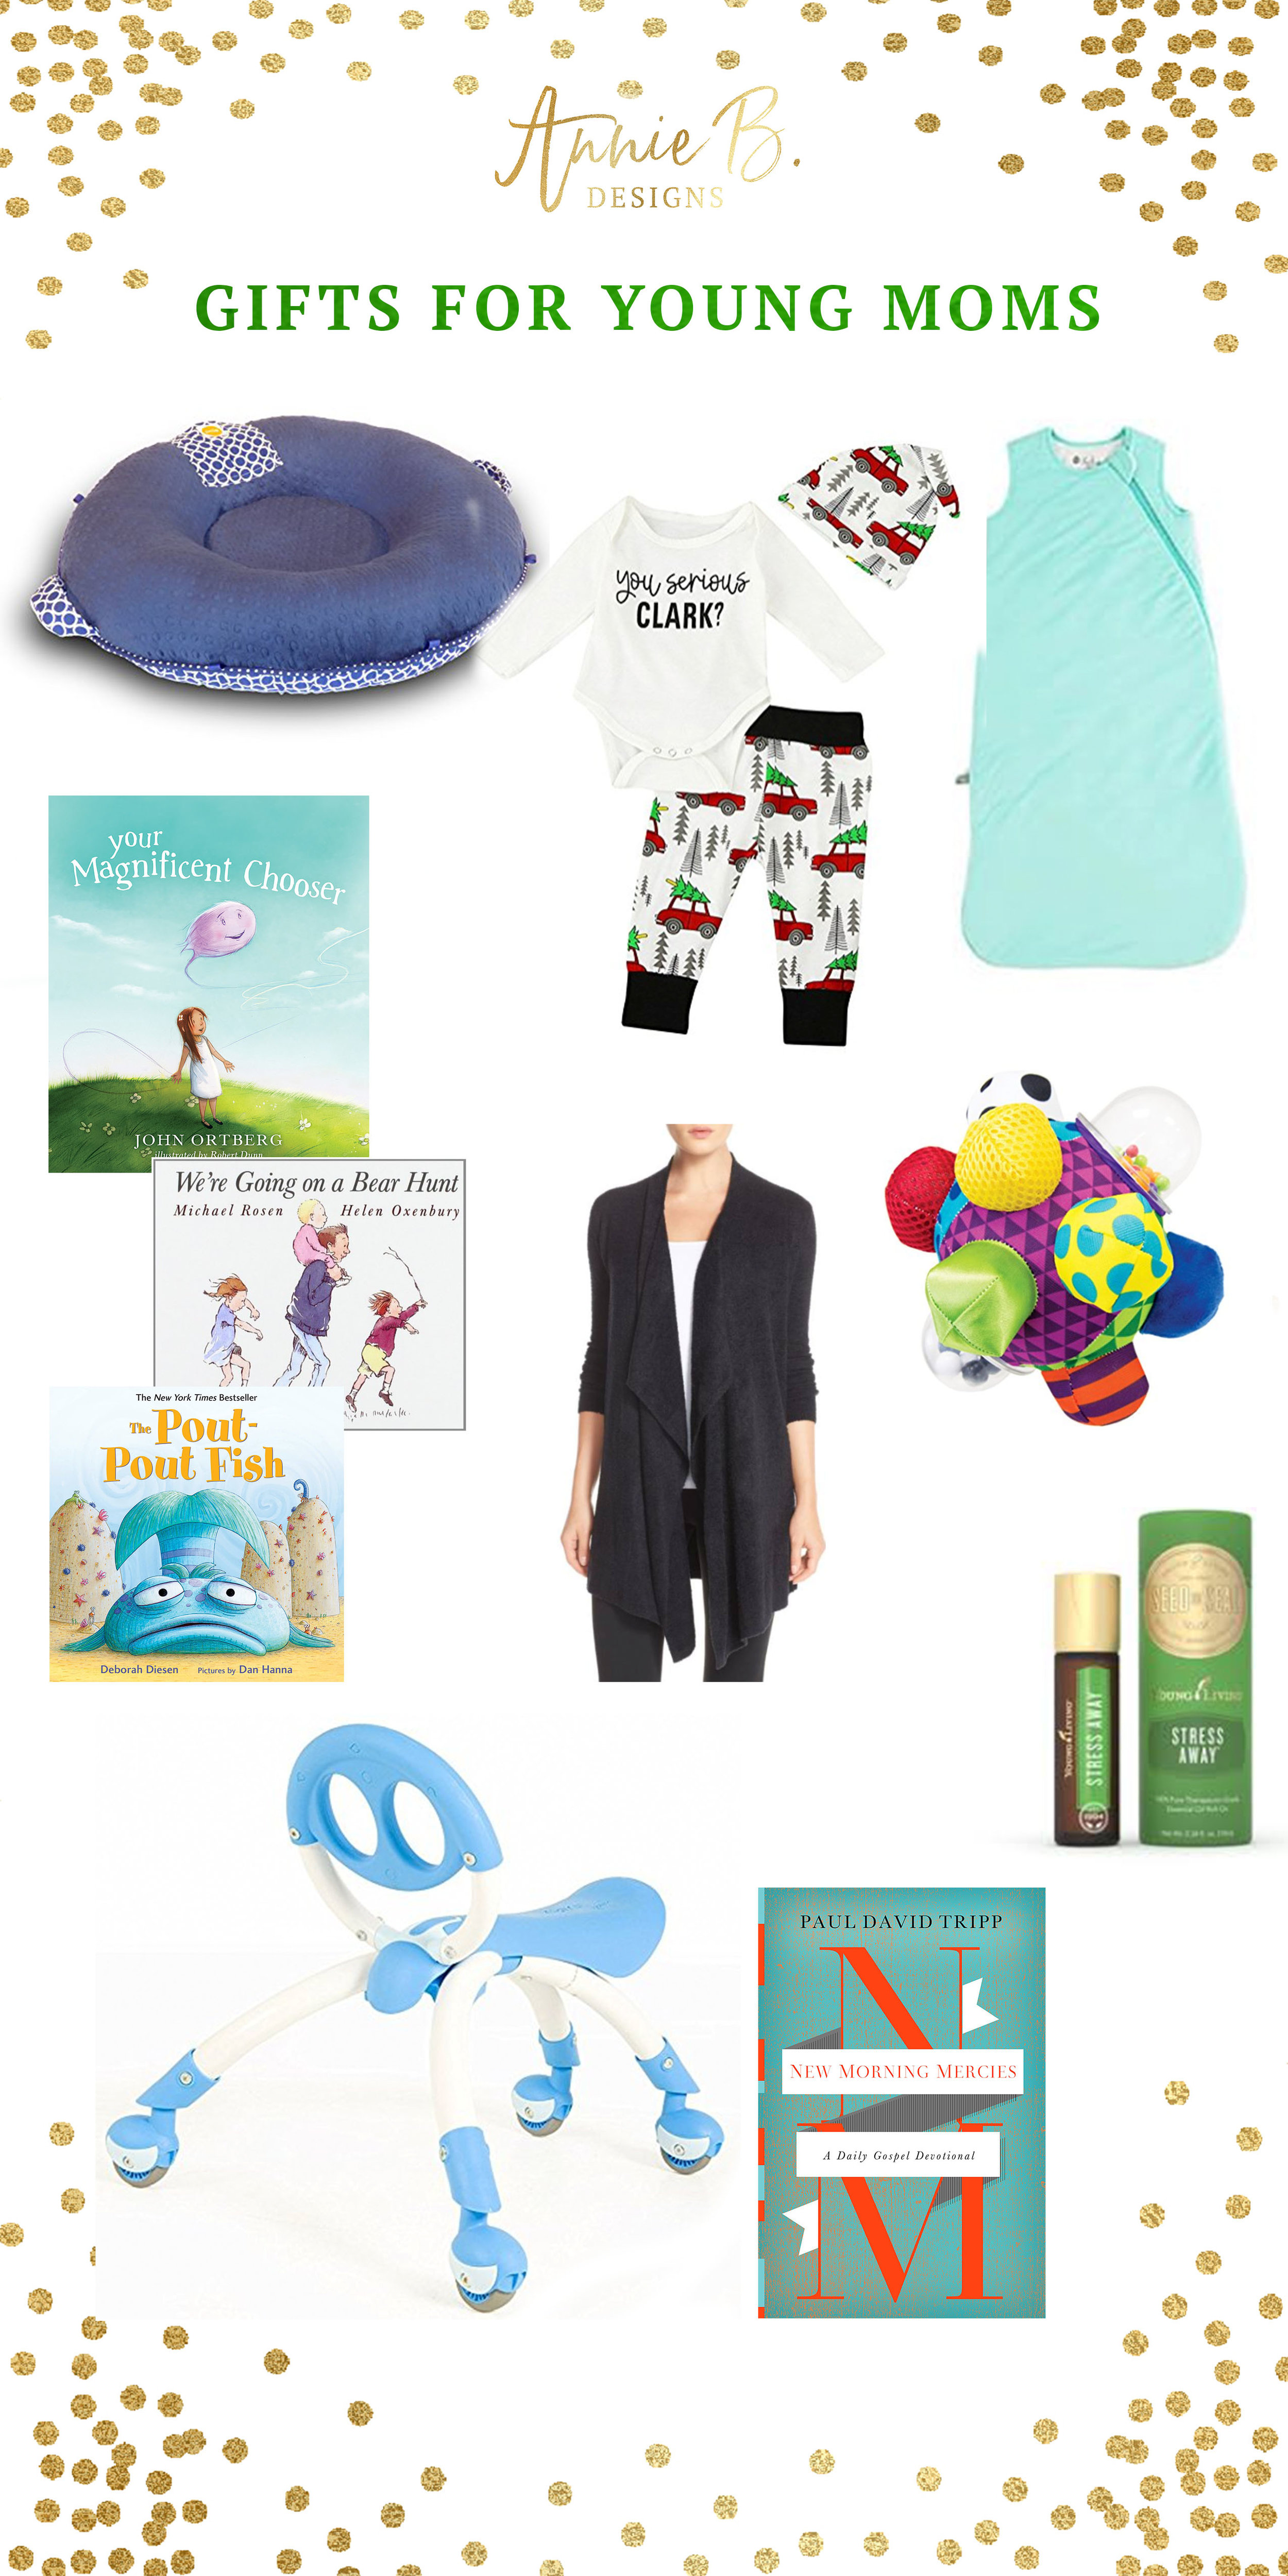 gifts-for-young-moms.jpg